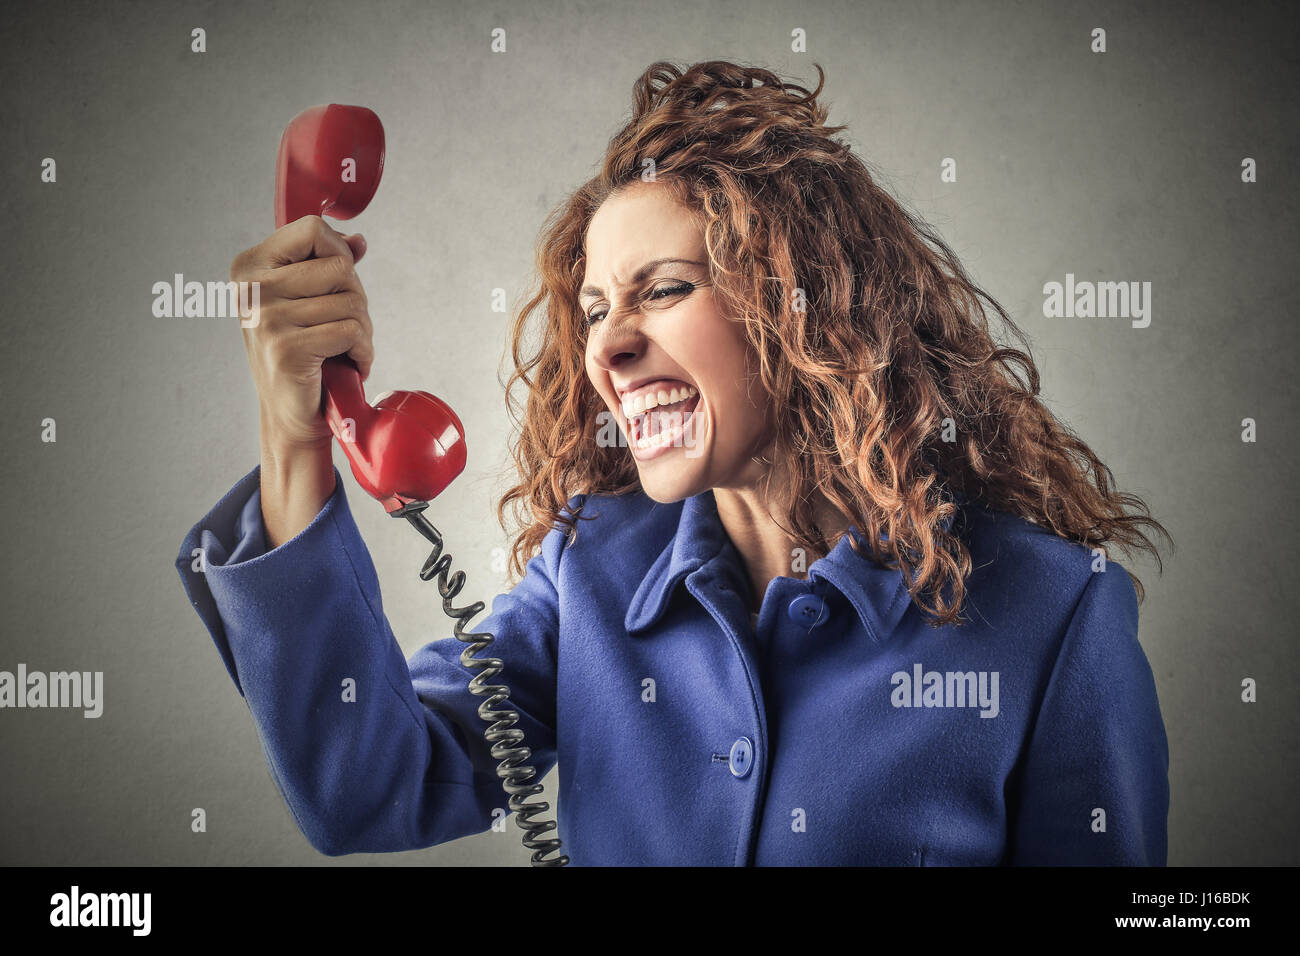 Curly woman yelling with phone - Stock Image